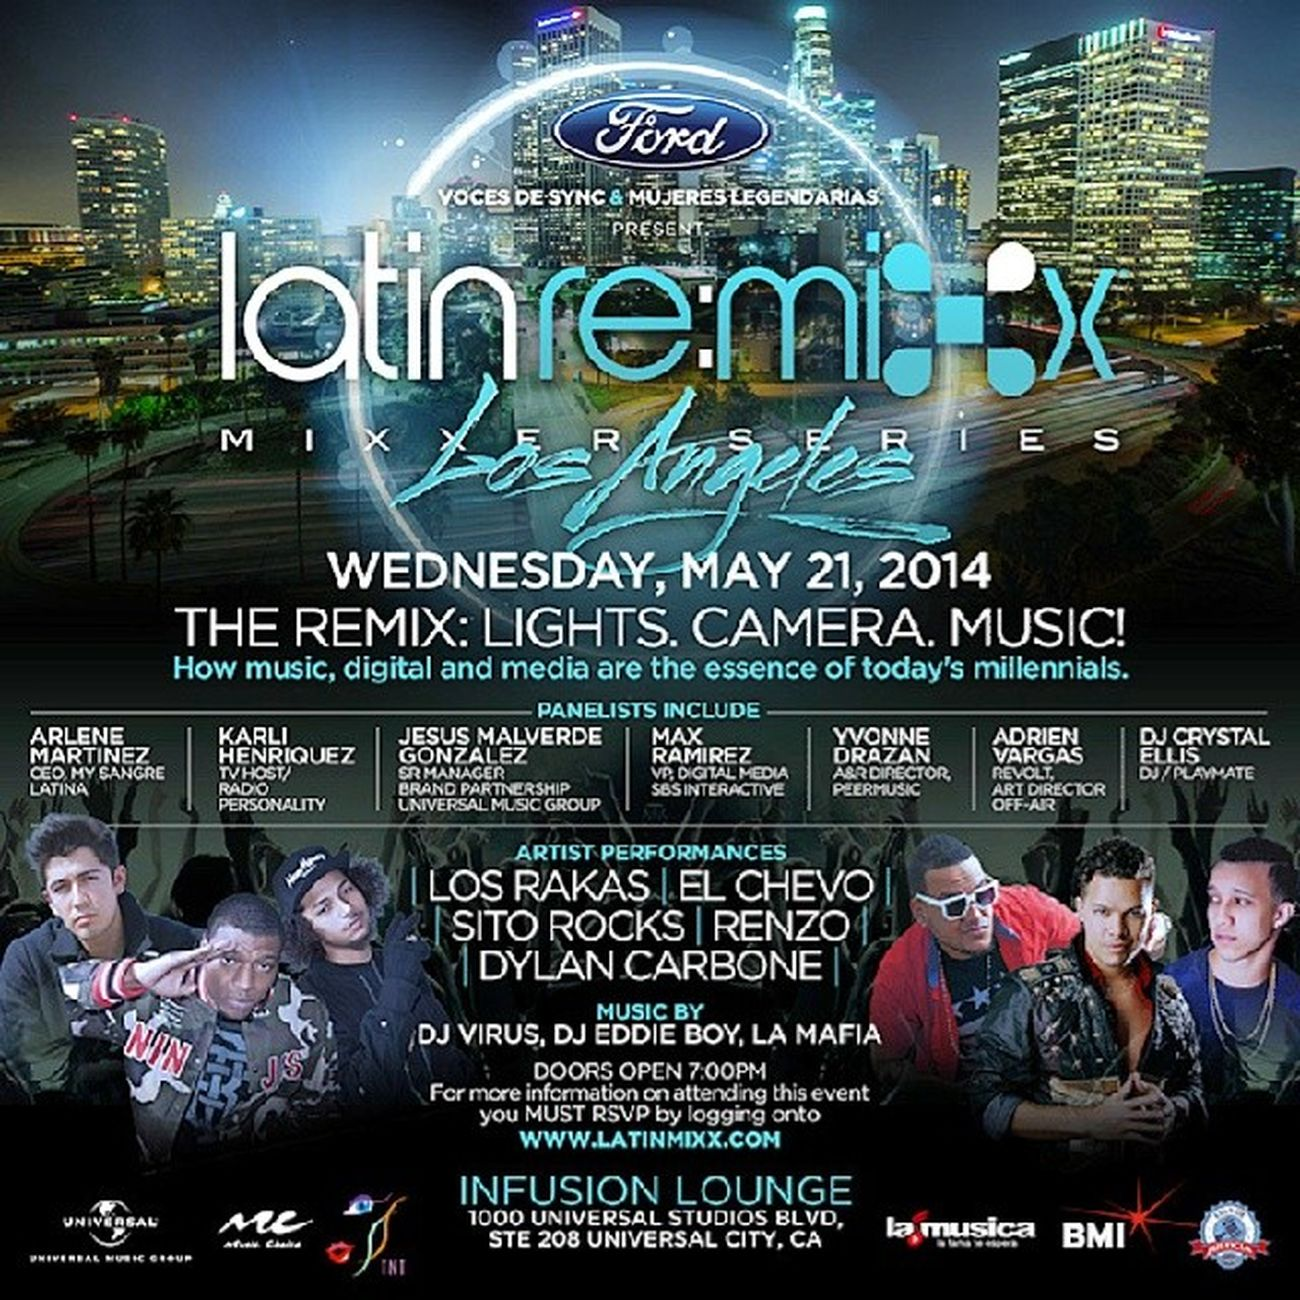 Come watch the kid drop marketing gems on the Lights, Camera, Music panel. Lmx2014 OG ArtLife